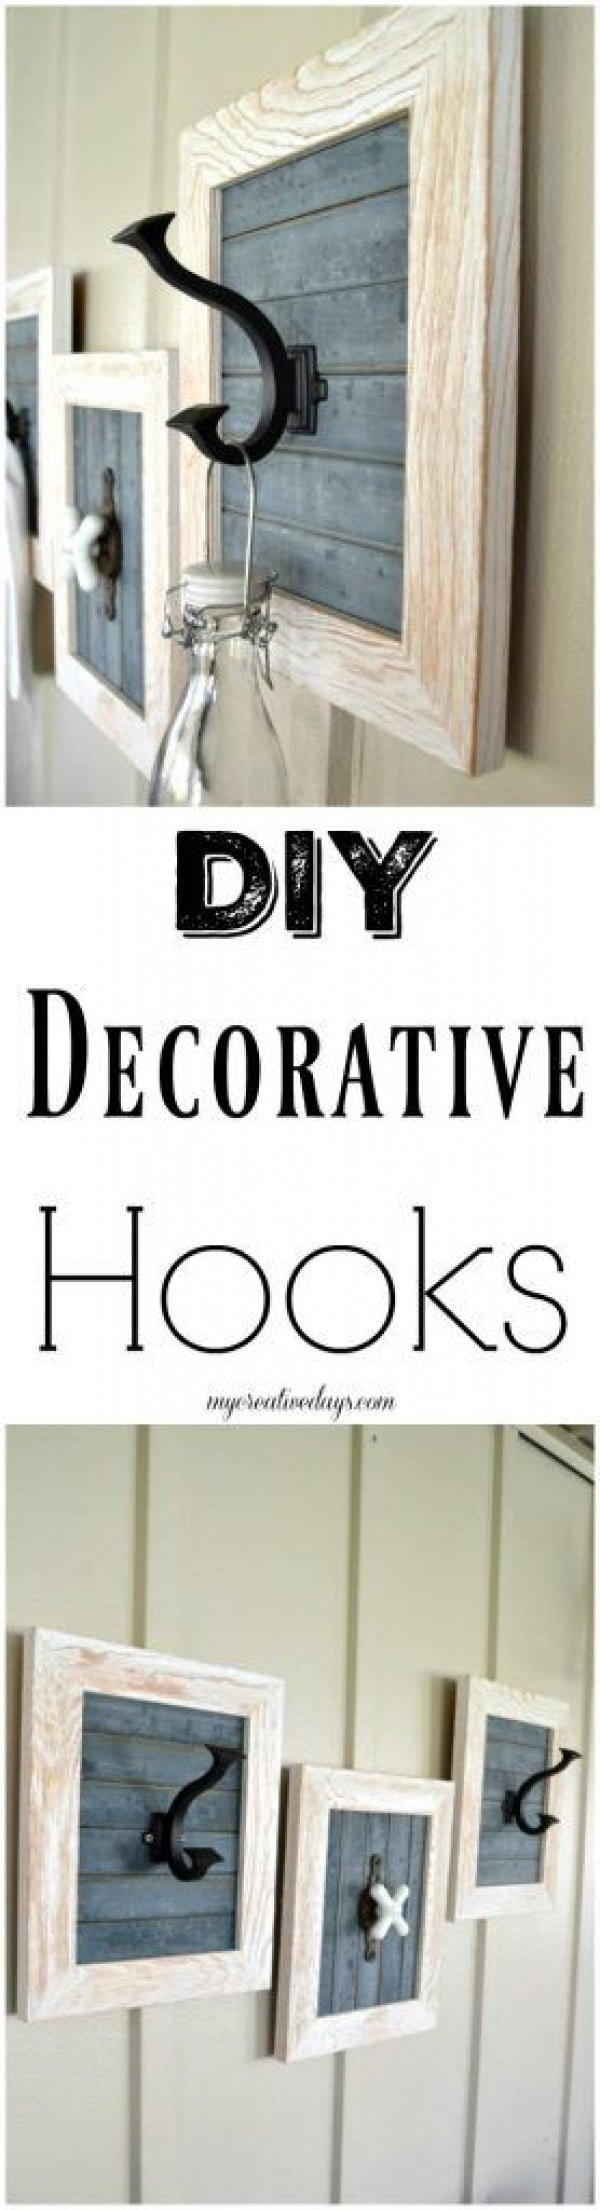 Check out the tutorial on how to make a #DIY #farmhouse decorative hooks. Looks easy enough! #HomeDecorIdeas